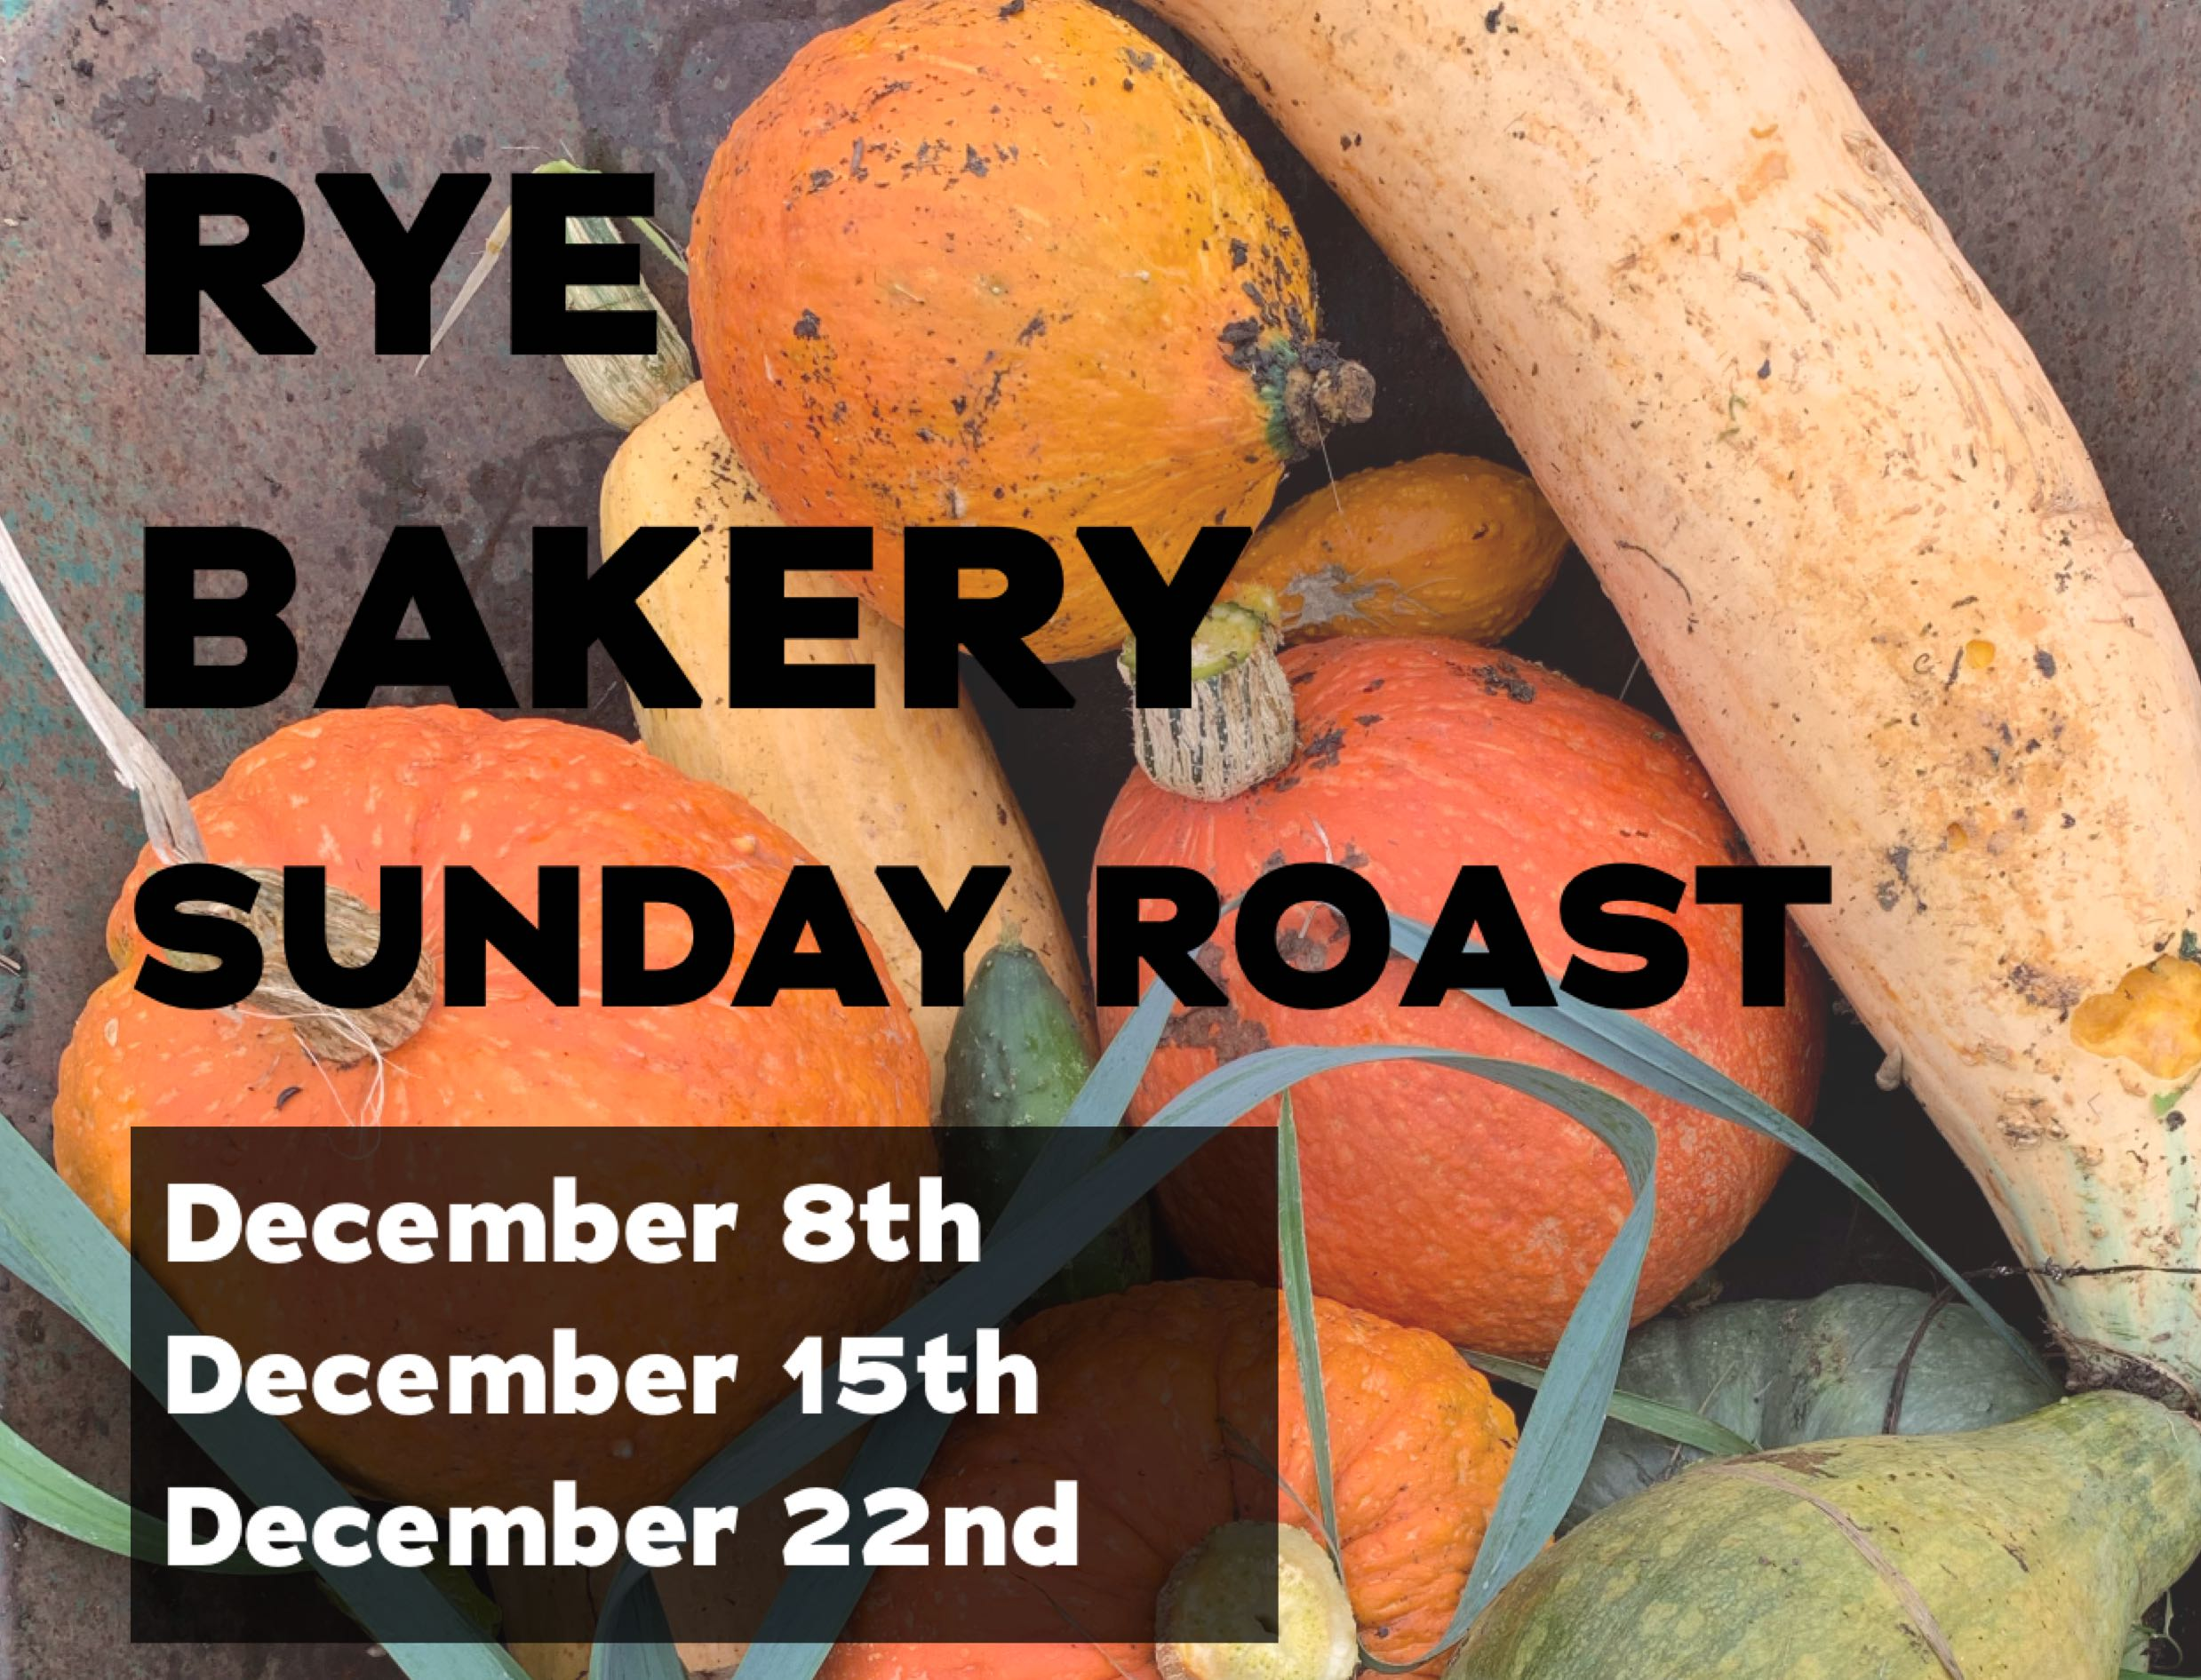 The Rye Bakery at RISE